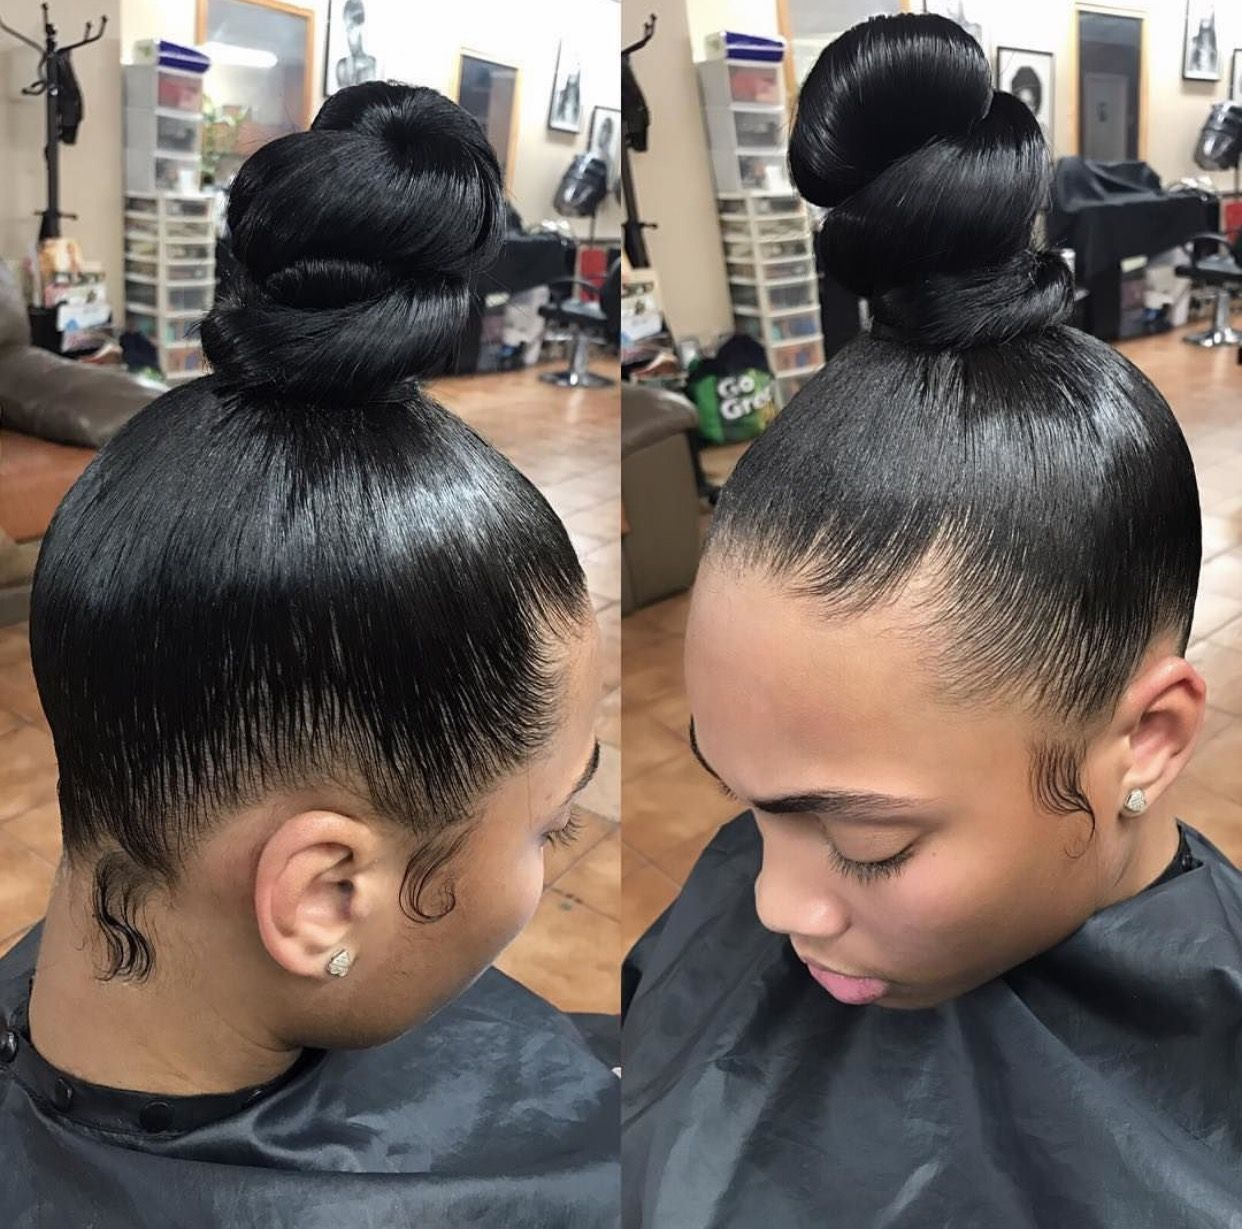 Follow Kebay 4 More Pins Like This Inbox Pics Of Your Nails Hair Shoes W Ig Snap Twitter Fb Pinteres Virgin Hair Wigs Baby Hairstyles Natural Hair Styles